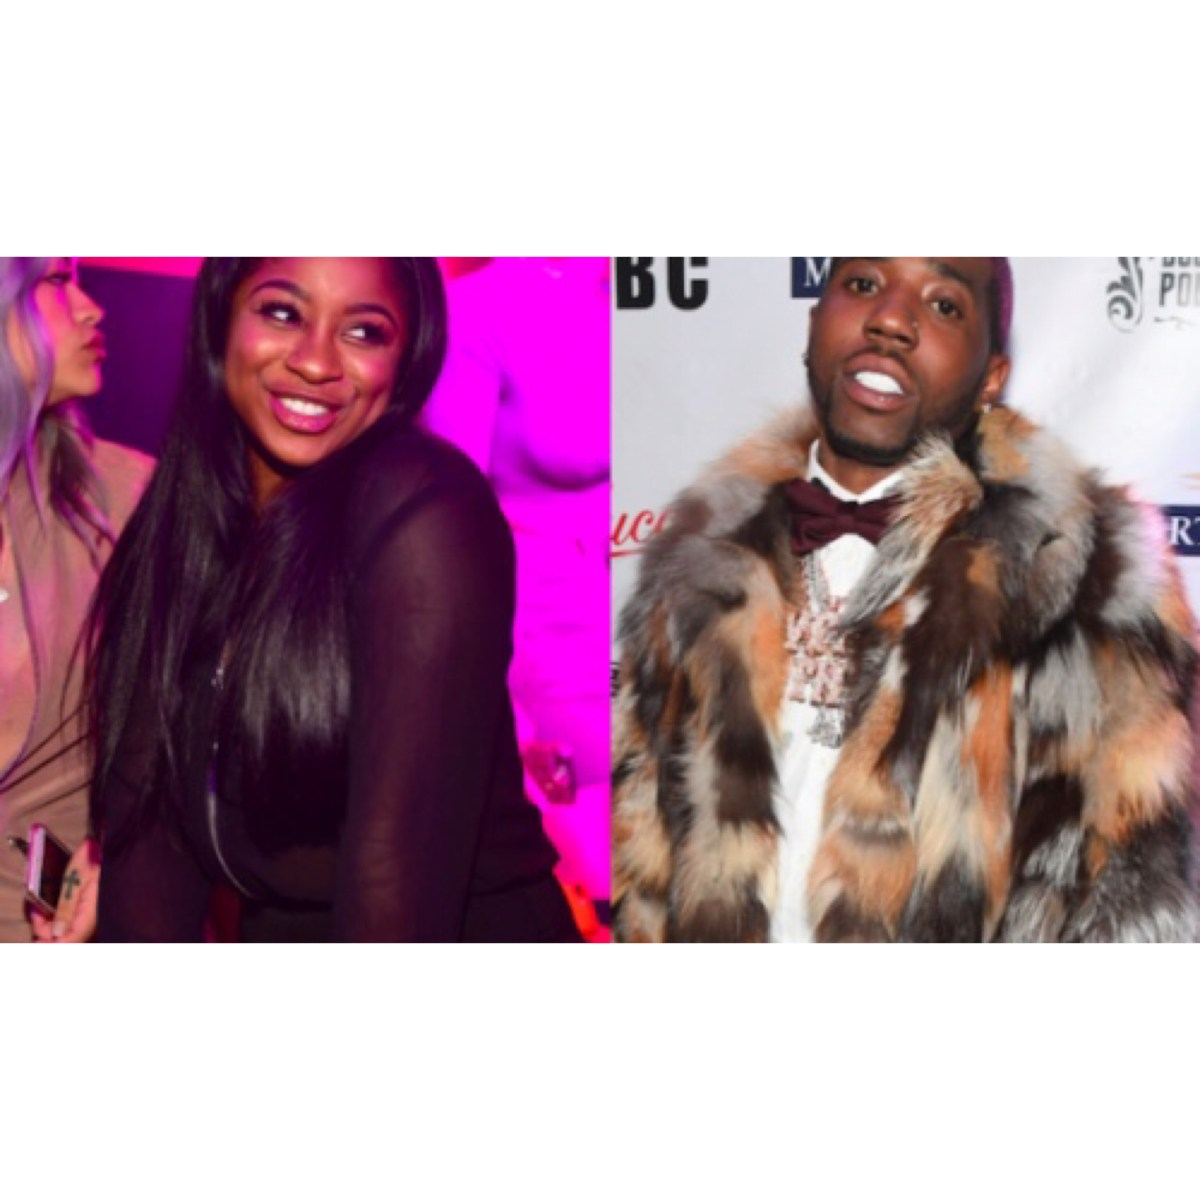 Reginae Spotted out in LA with Yfn Lucci